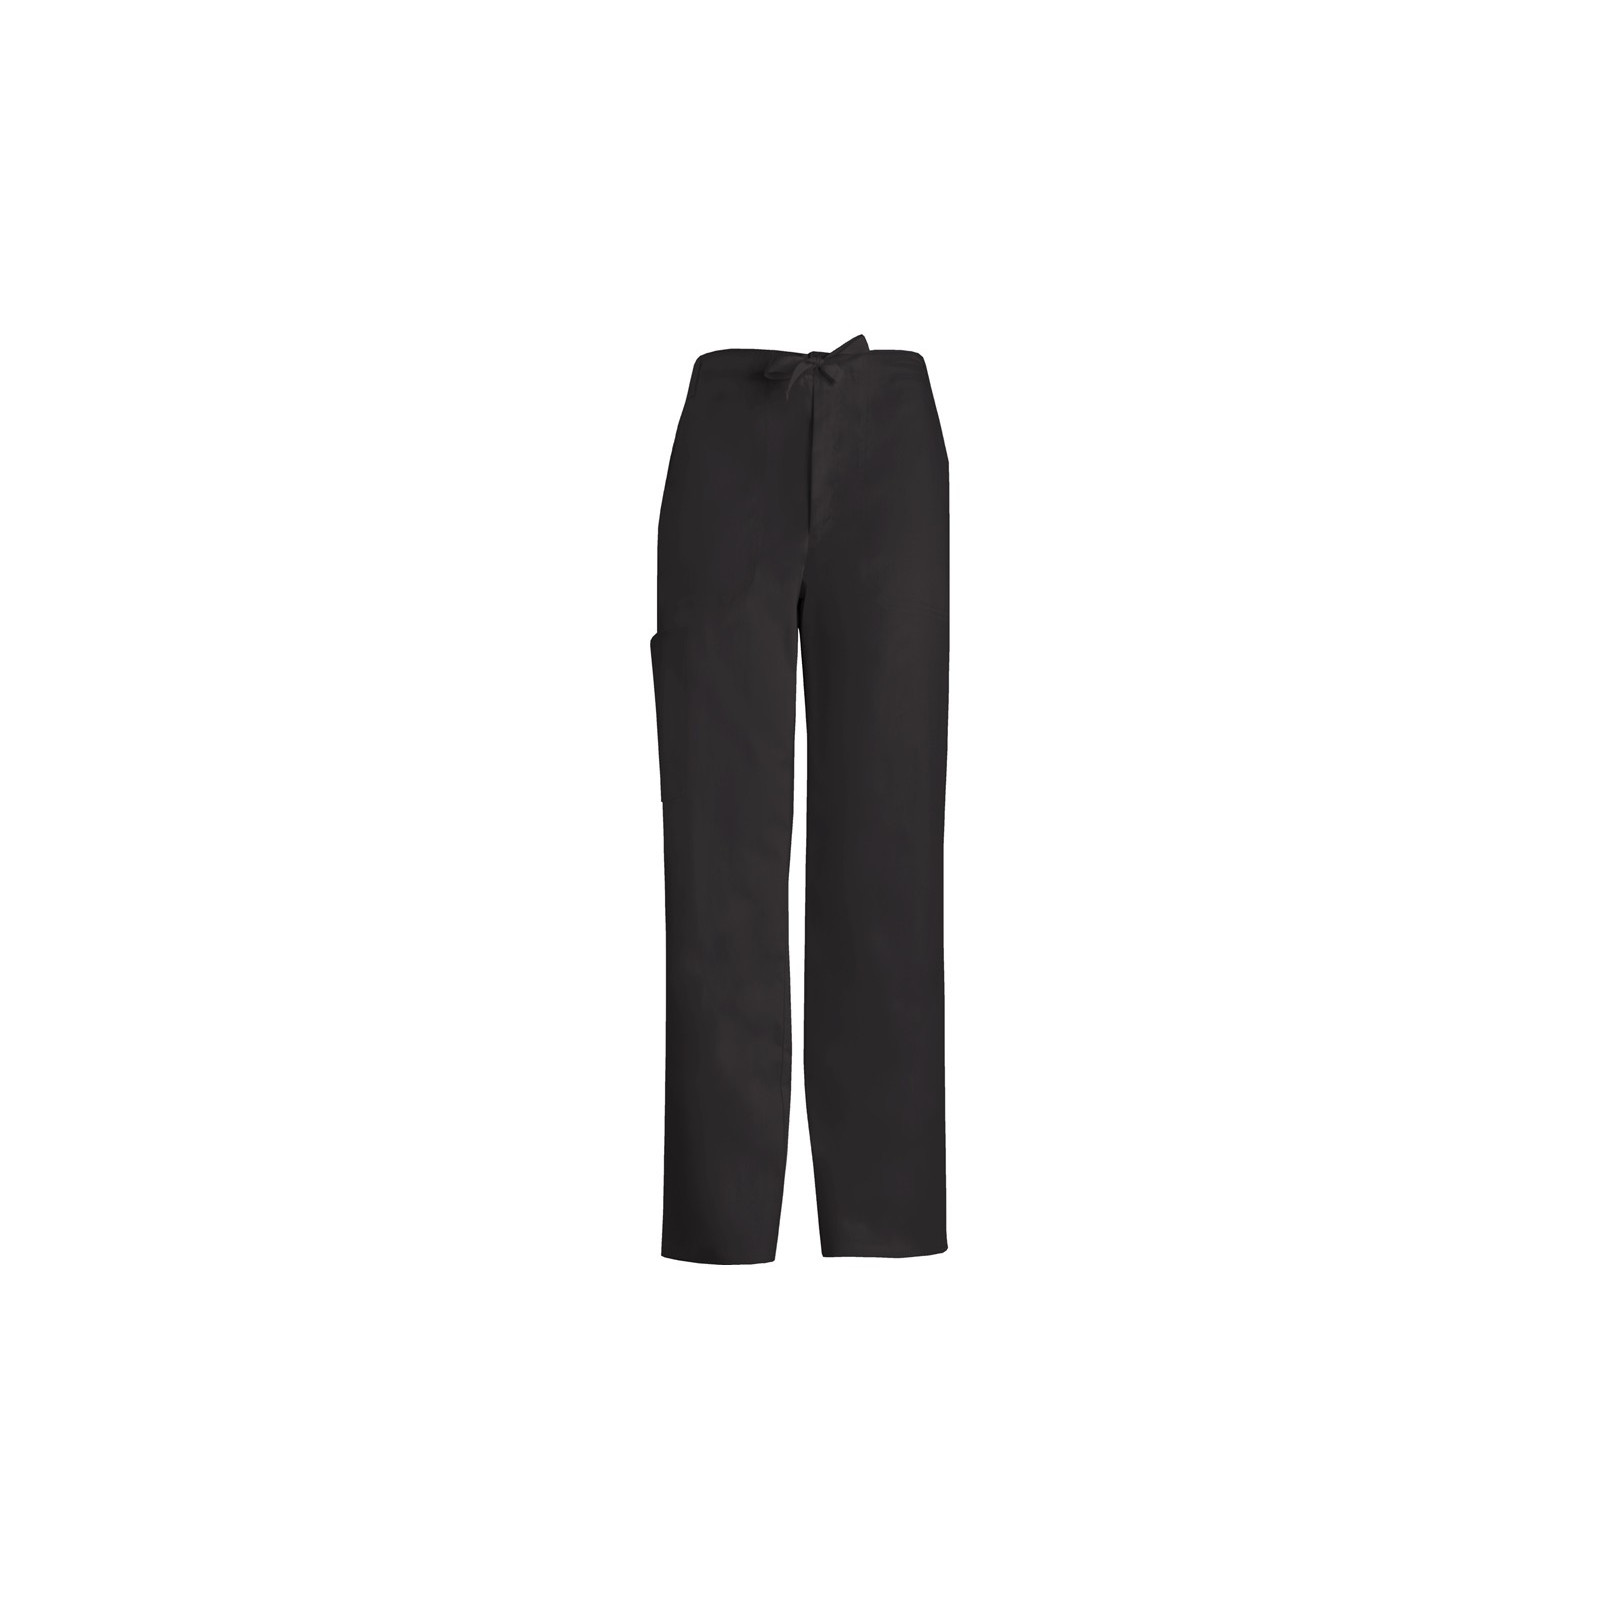 "Pantalon stretch Homme Cherokee, collection ""Luxe"" (1022)"